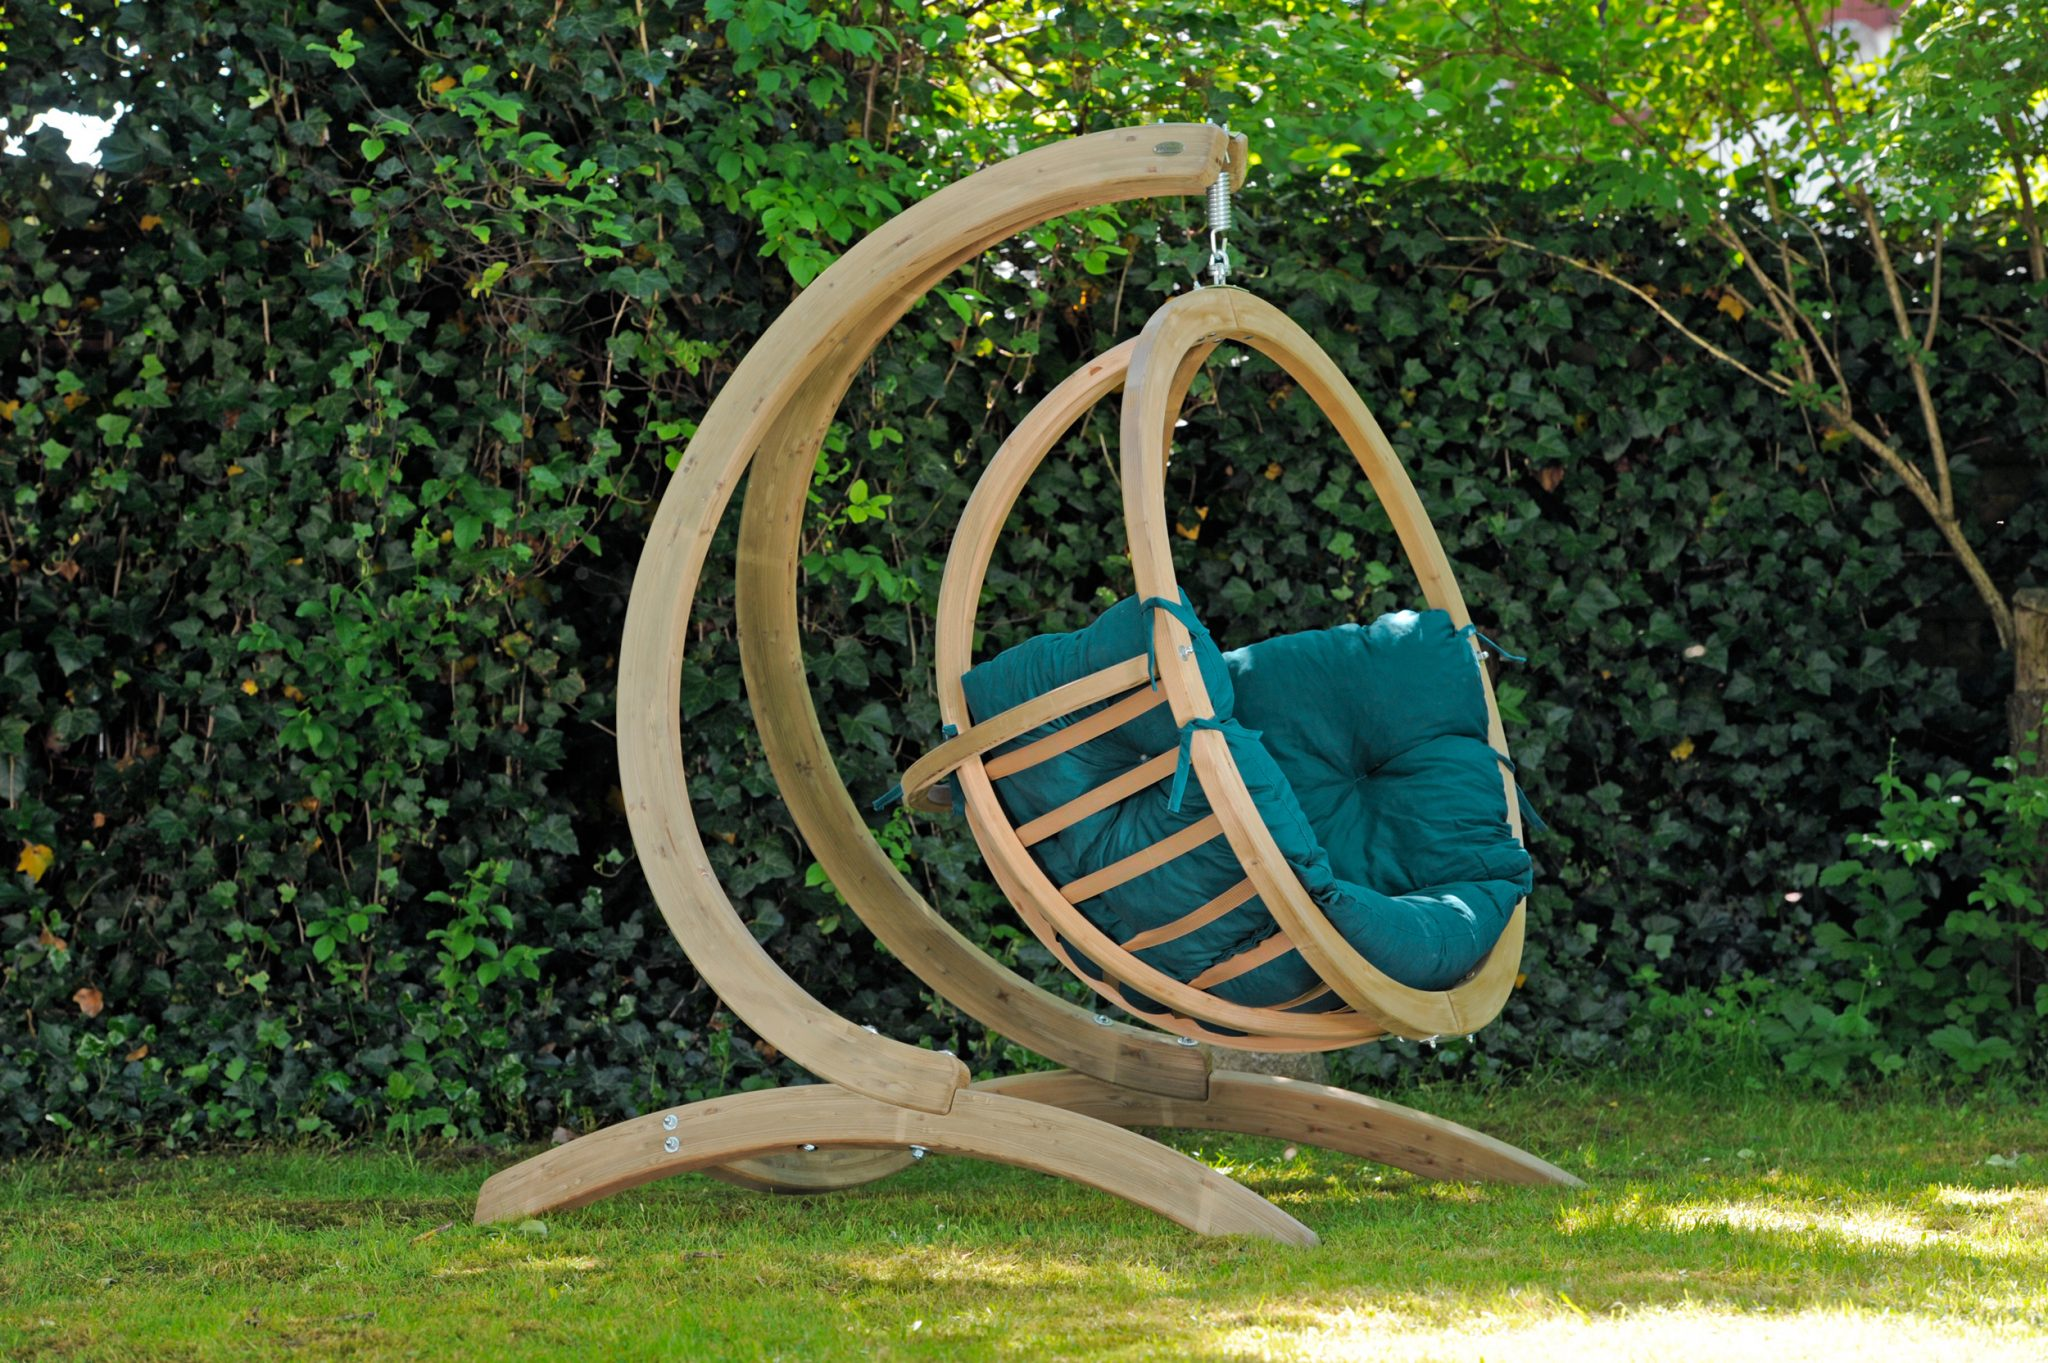 Wooden Globo Hanging Chair with Stand